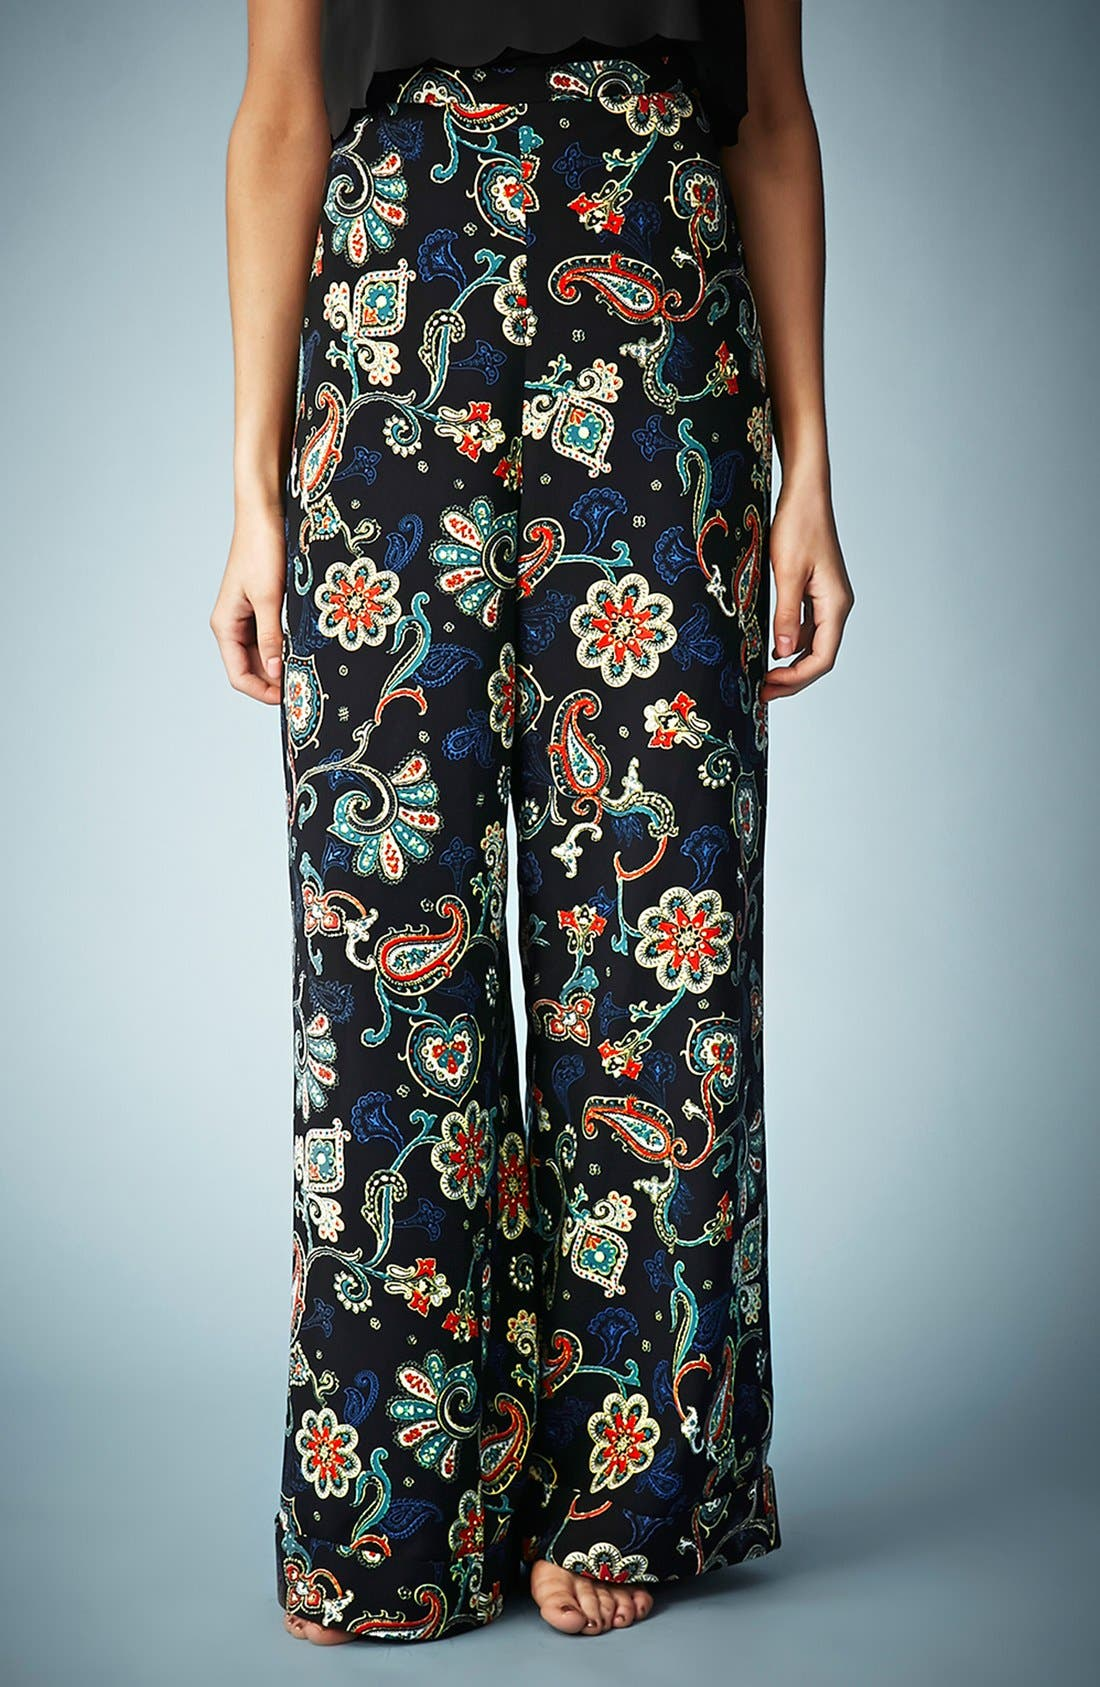 Kate Moss for Topshop Paisley Wide Leg Pants,                             Main thumbnail 1, color,                             001